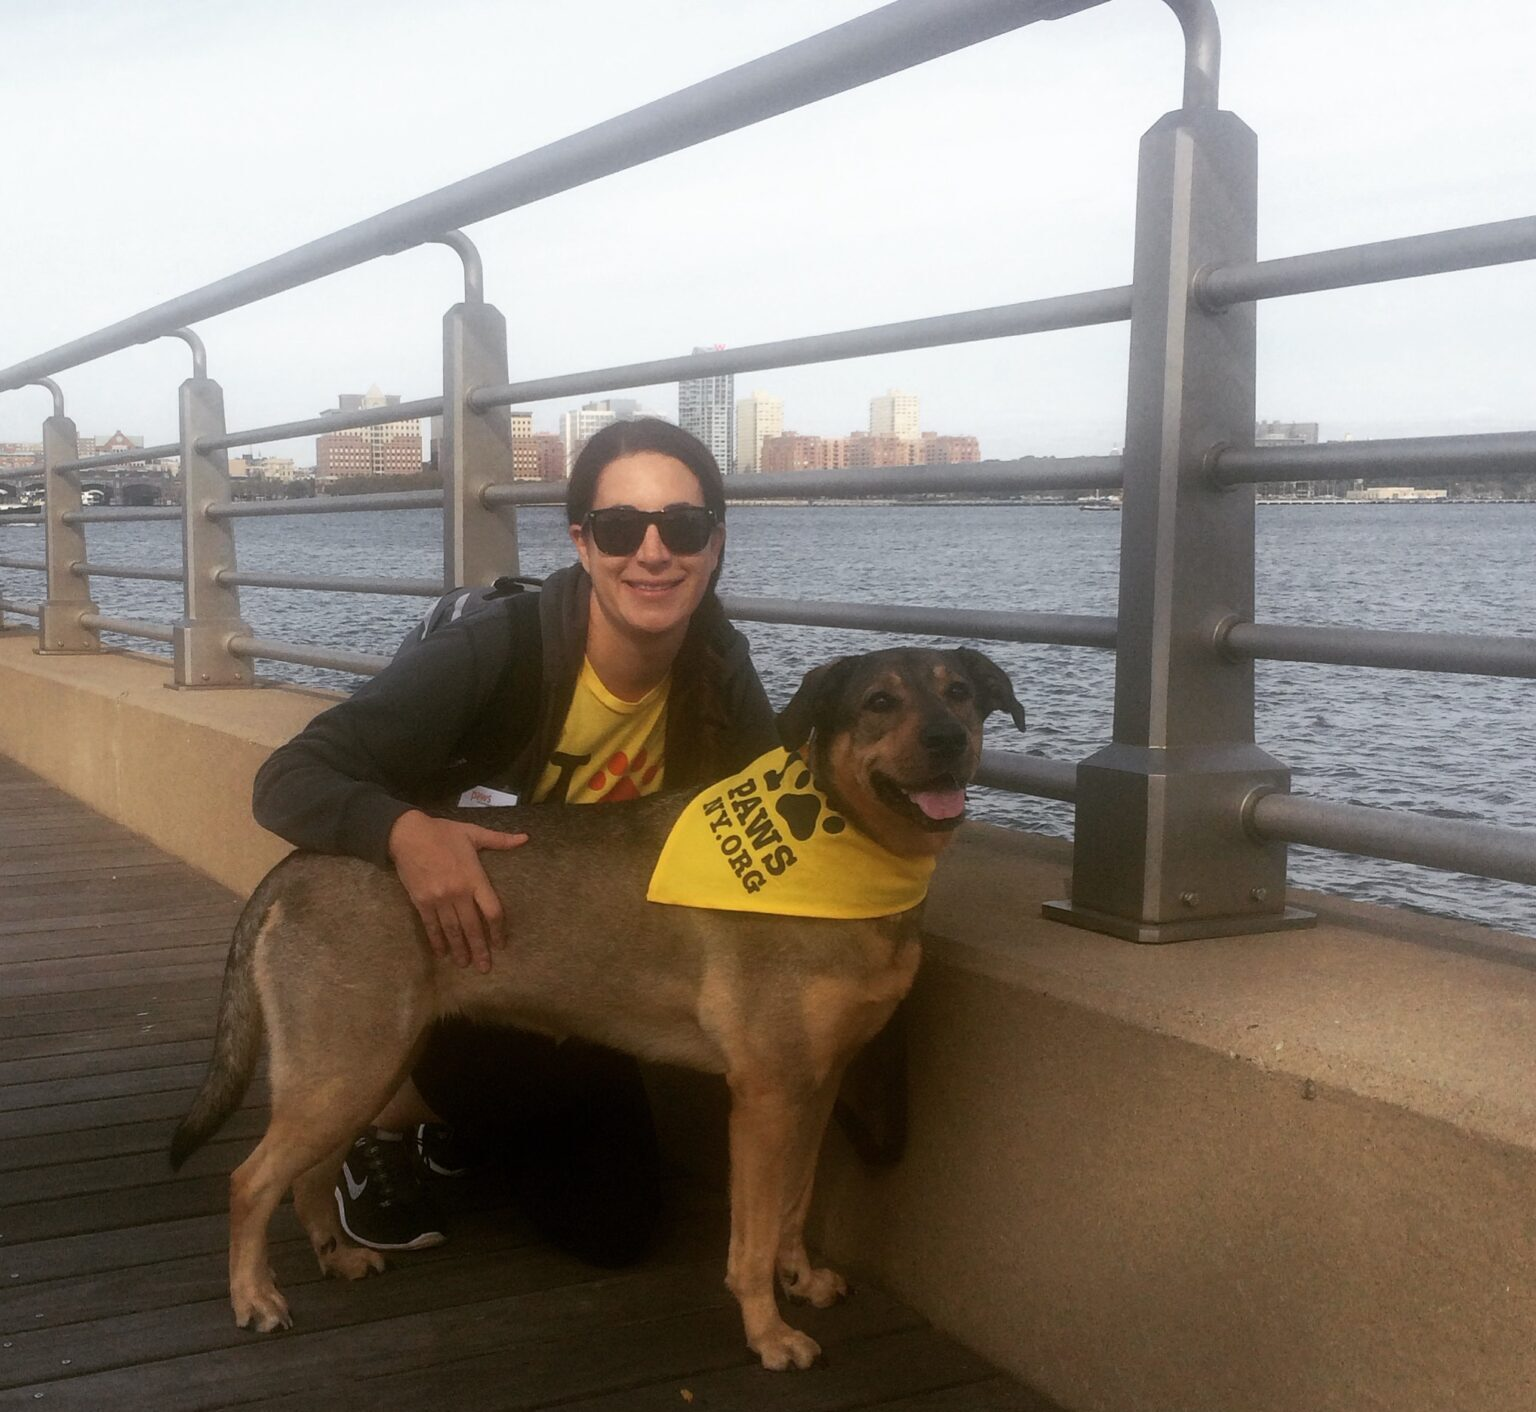 Carrie, with dark hair, sunglasses, and wearing a PAWS NY t-shirt, crouches down next to her dog, Emmylou, who is wearing a PAWS NY bandana. They are on a pier with the river in the background. Carrie is the Deputy Director of Programs and Strategy for PAWS NY